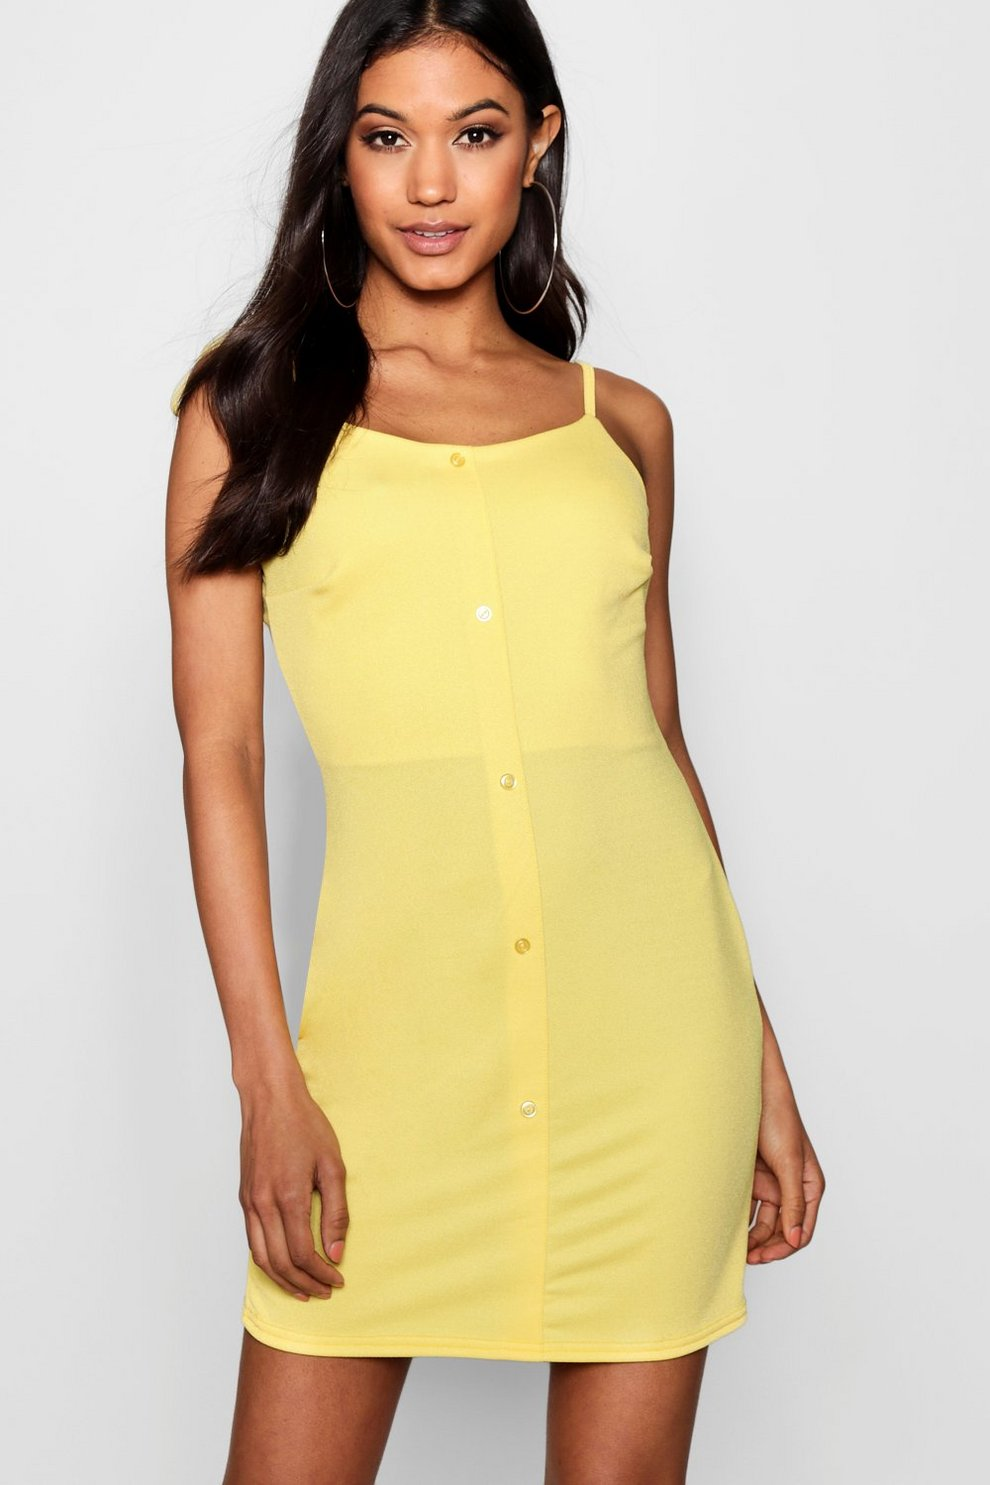 Discount Professional Boohoo Button Through Tie Strap Sun Dress Purchase Online Clearance Fake Buy Cheap Find Great PHhbXS